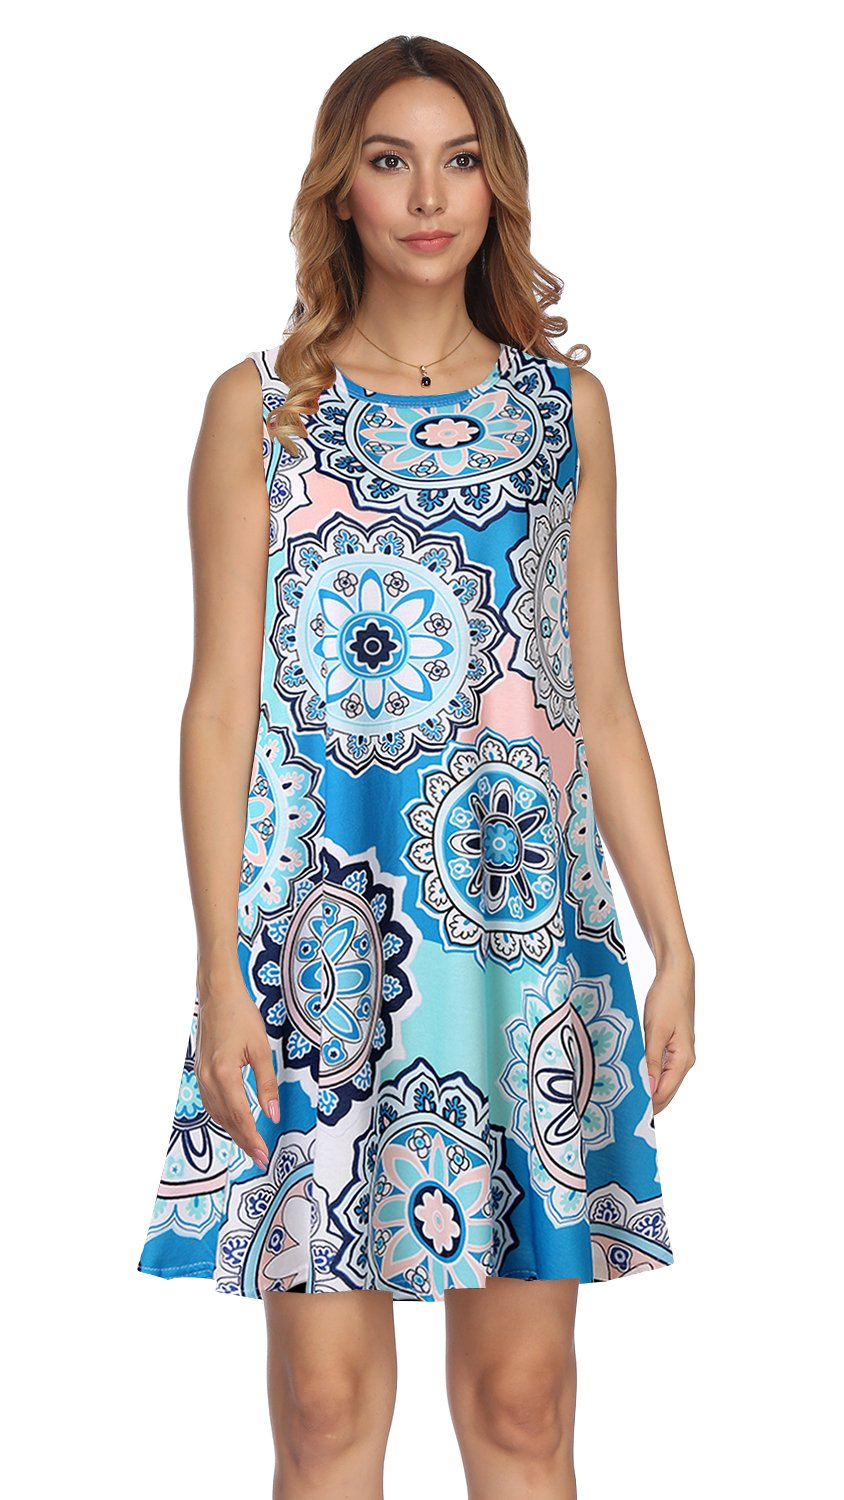 Available at Amazon: Demetory Women's Summer Floral Print Tunic Dress with Pocket